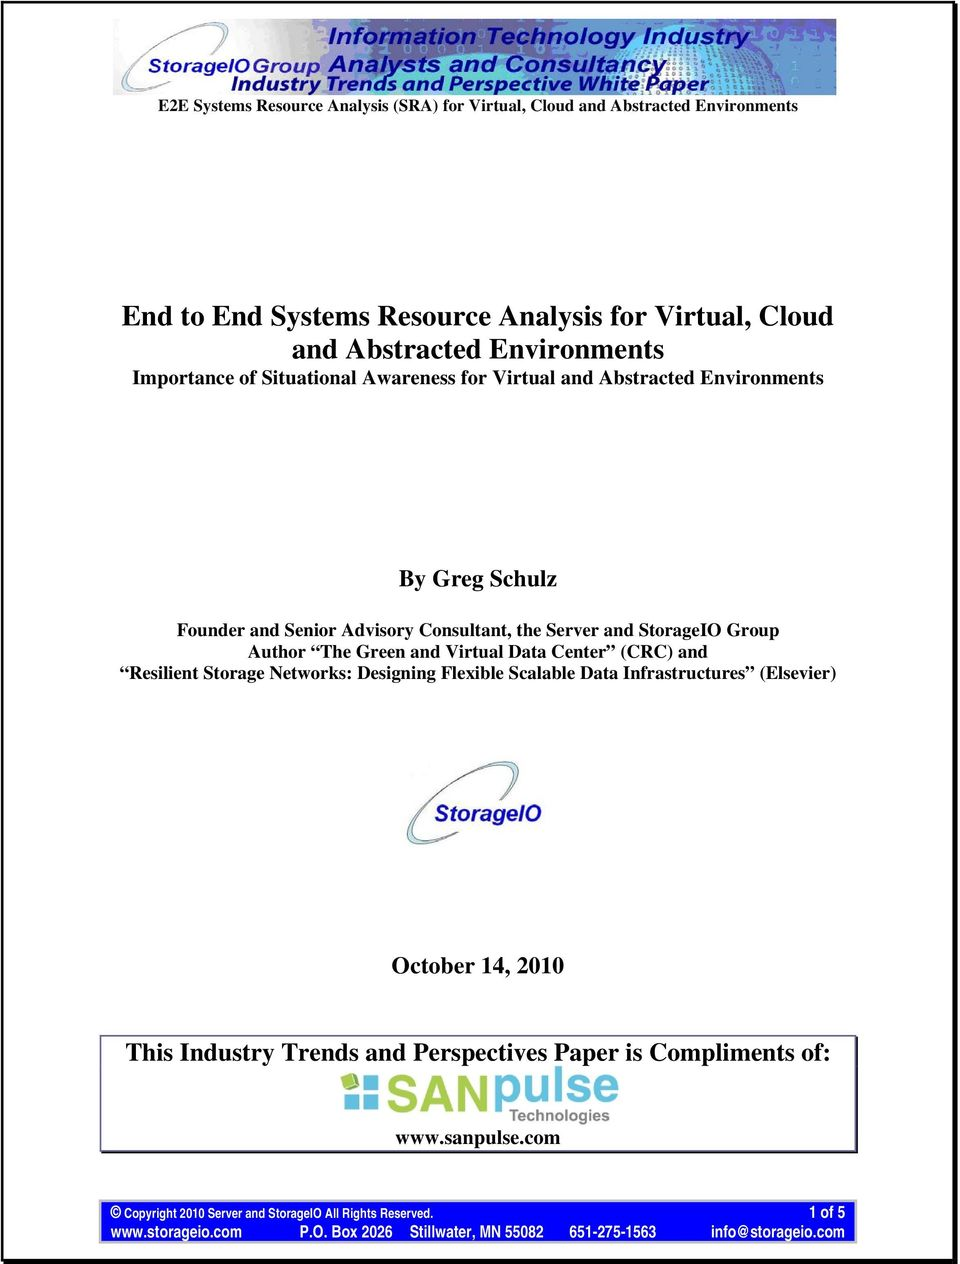 Virtual Data Center (CRC) and Resilient Storage Networks: Designing Flexible Scalable Data Infrastructures (Elsevier) October 14, 2010